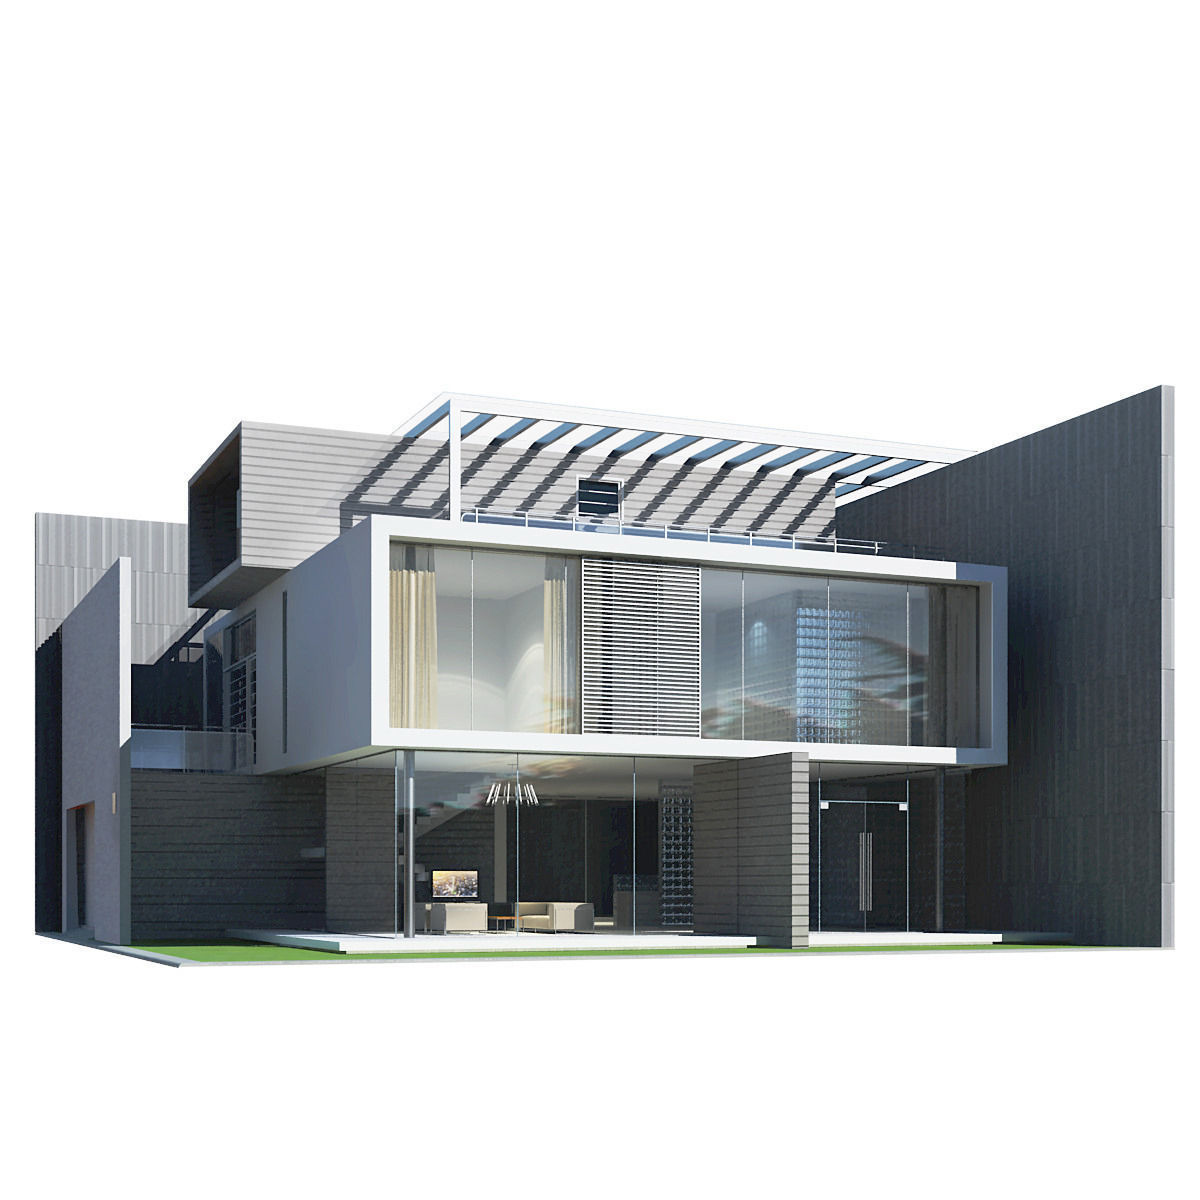 Modern house 3d model max obj 3ds fbx 3d home architecture design software free download